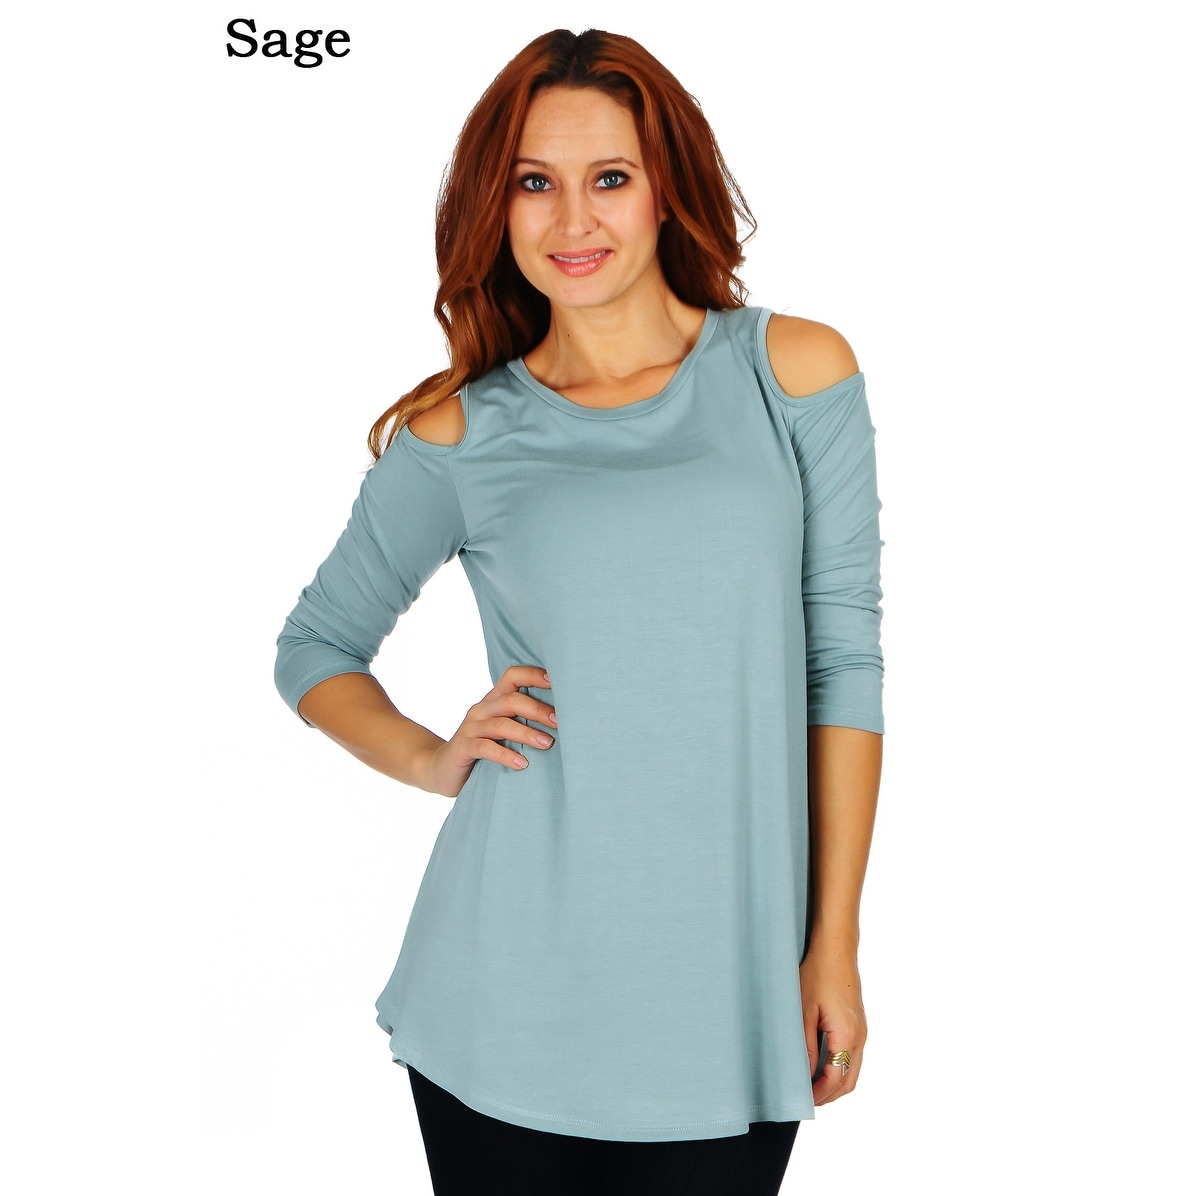 2350c6bd0105 Shop Simply Ravishing Women's Cold Shoulder Flare 3/4 Sleeve Blouse Top  Tunic Shirt (Size: S-5X) - Free Shipping On Orders Over $45 - Overstock -  18528323